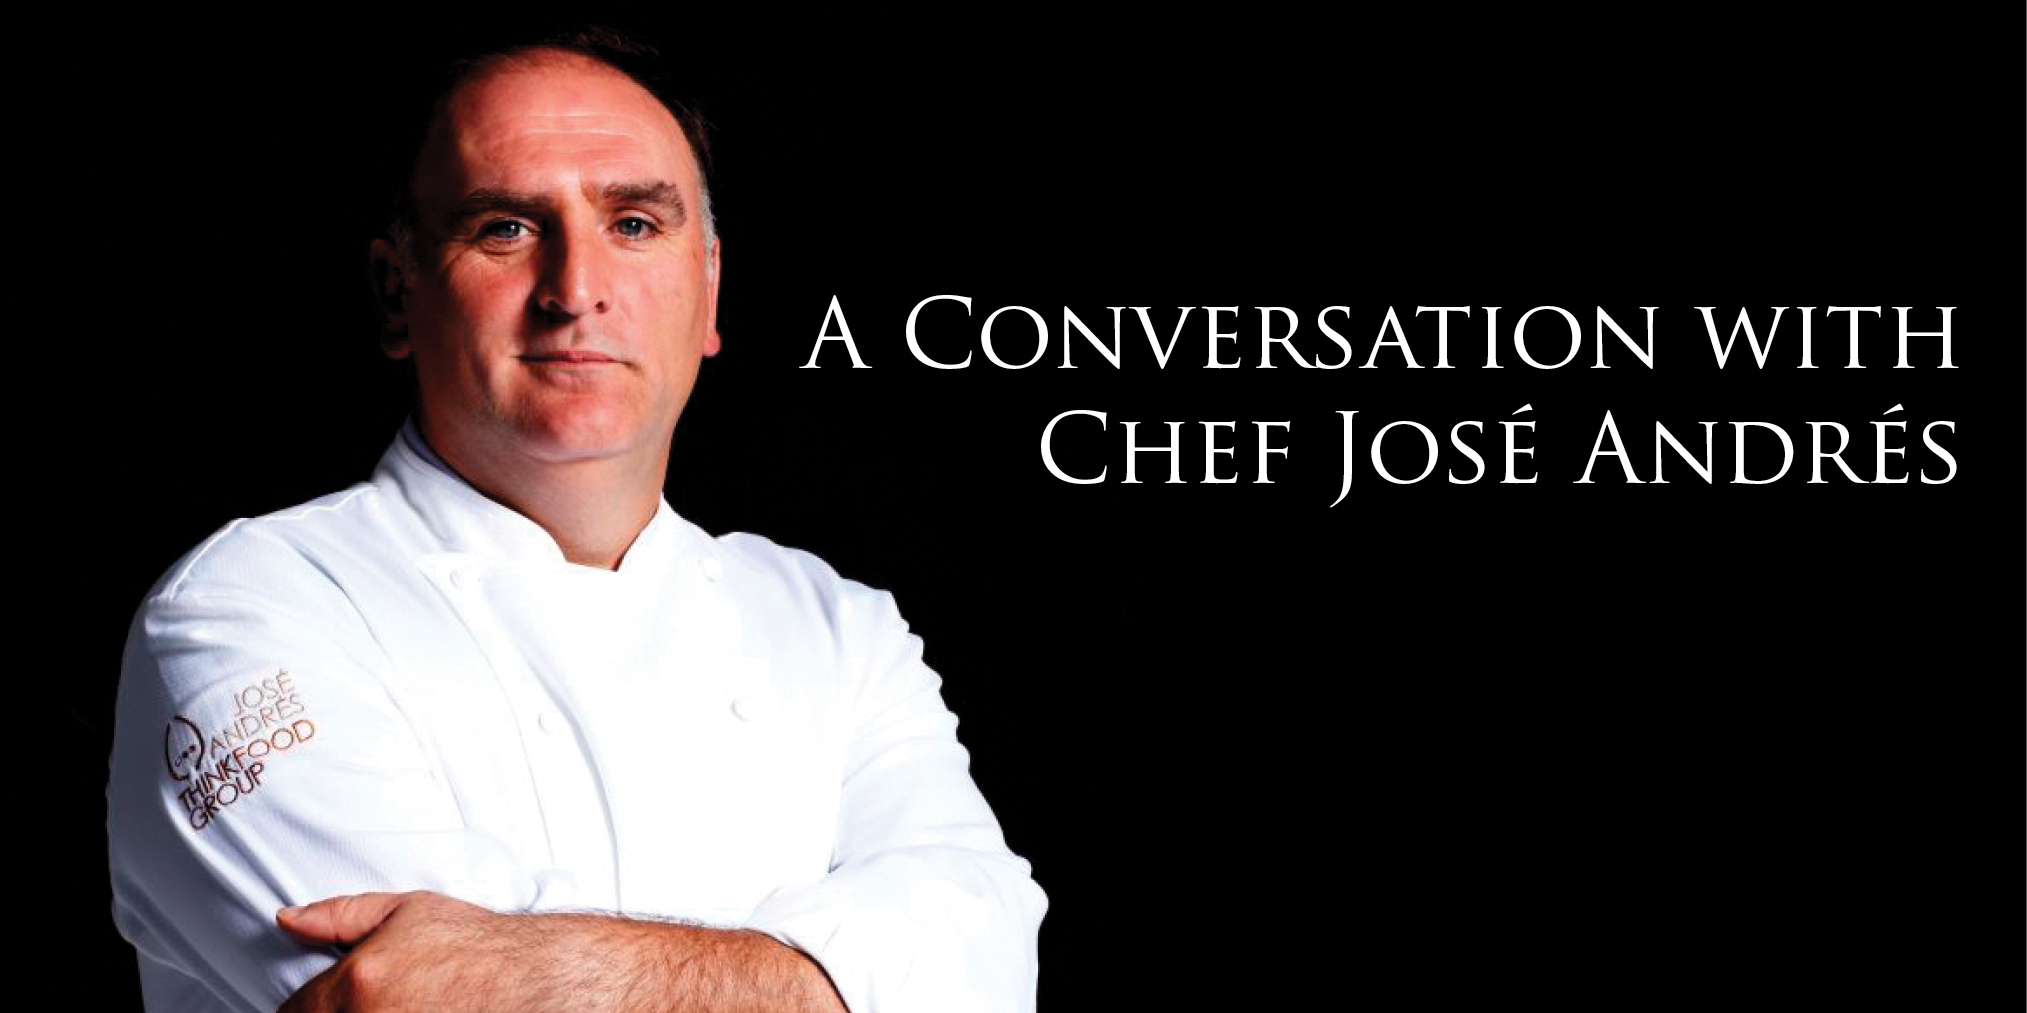 A conversation with chef jos andr s vivatysons for Fish by jose andres